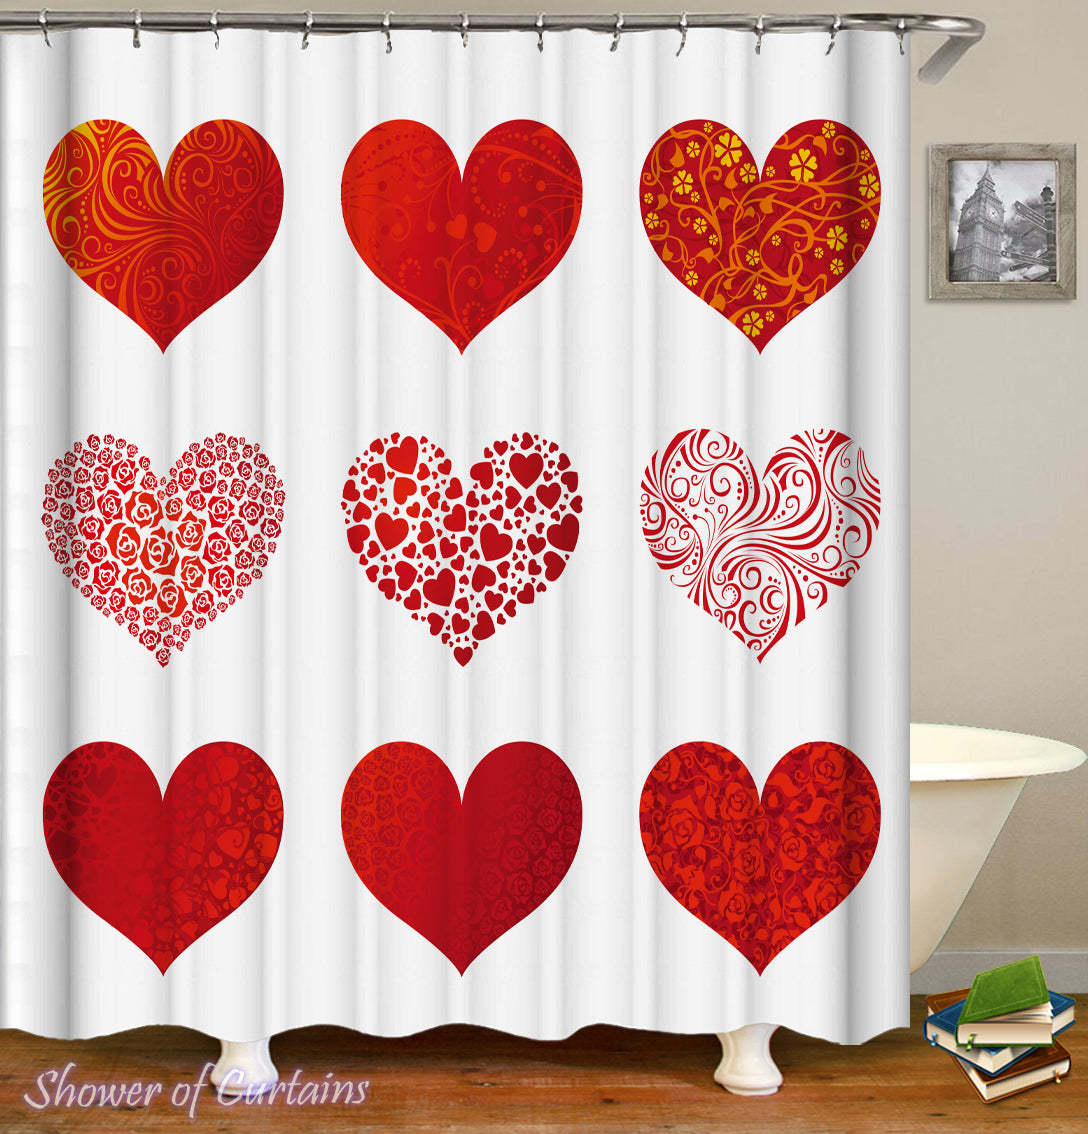 The Nine Hearts Shower Curtain